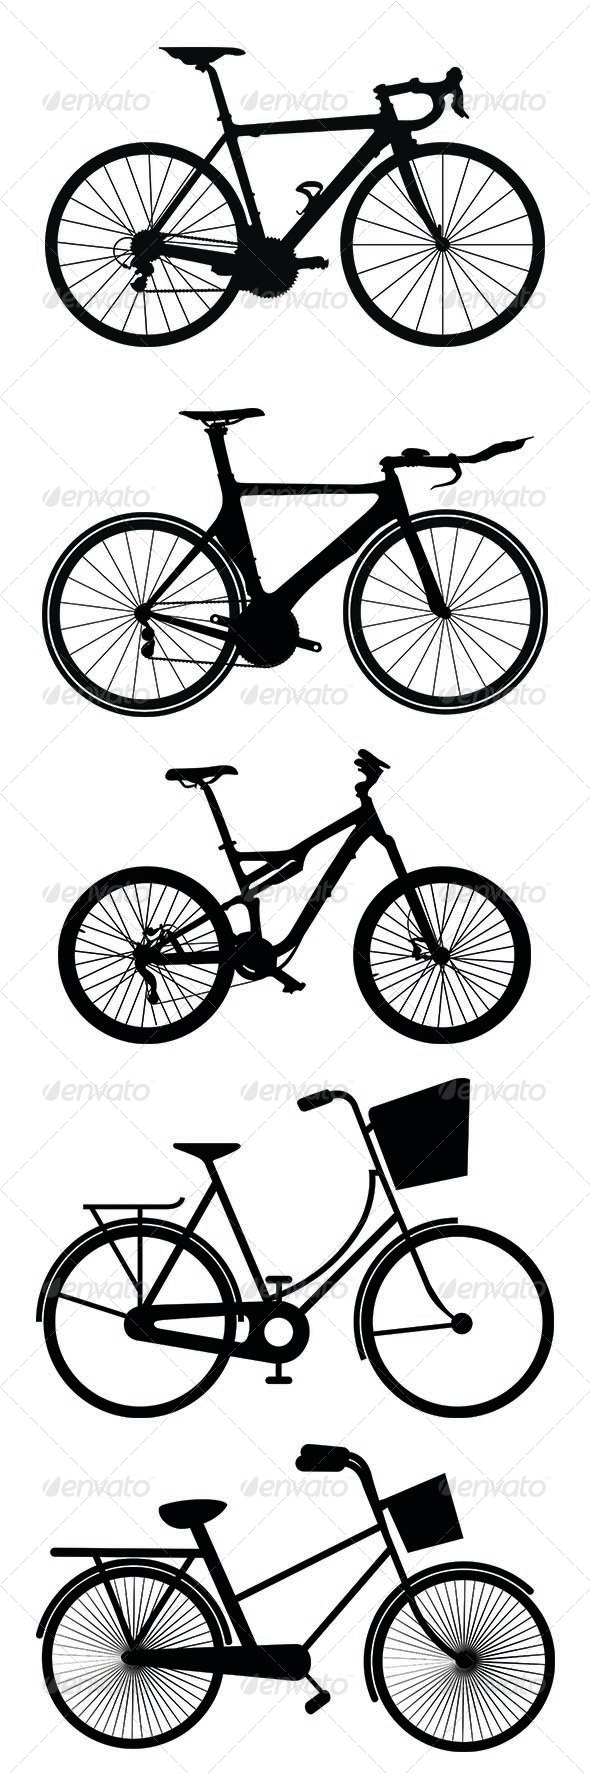 GraphicRiver Bicycle Silhouettes 7949143